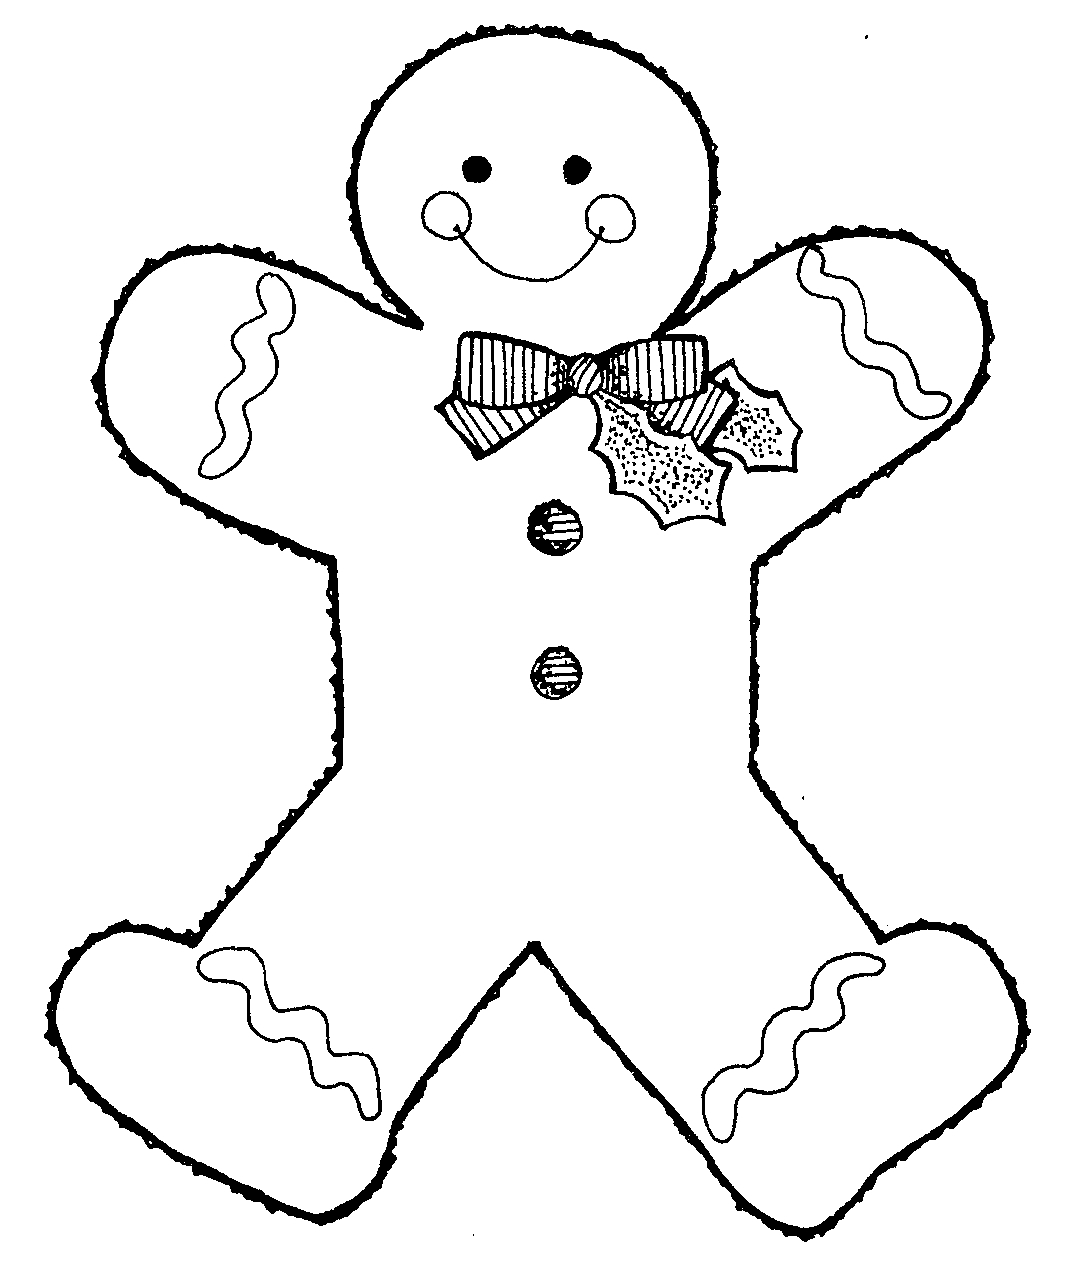 Uncategorized Gingerbread Man To Color free printable gingerbread man coloring pages for kids page